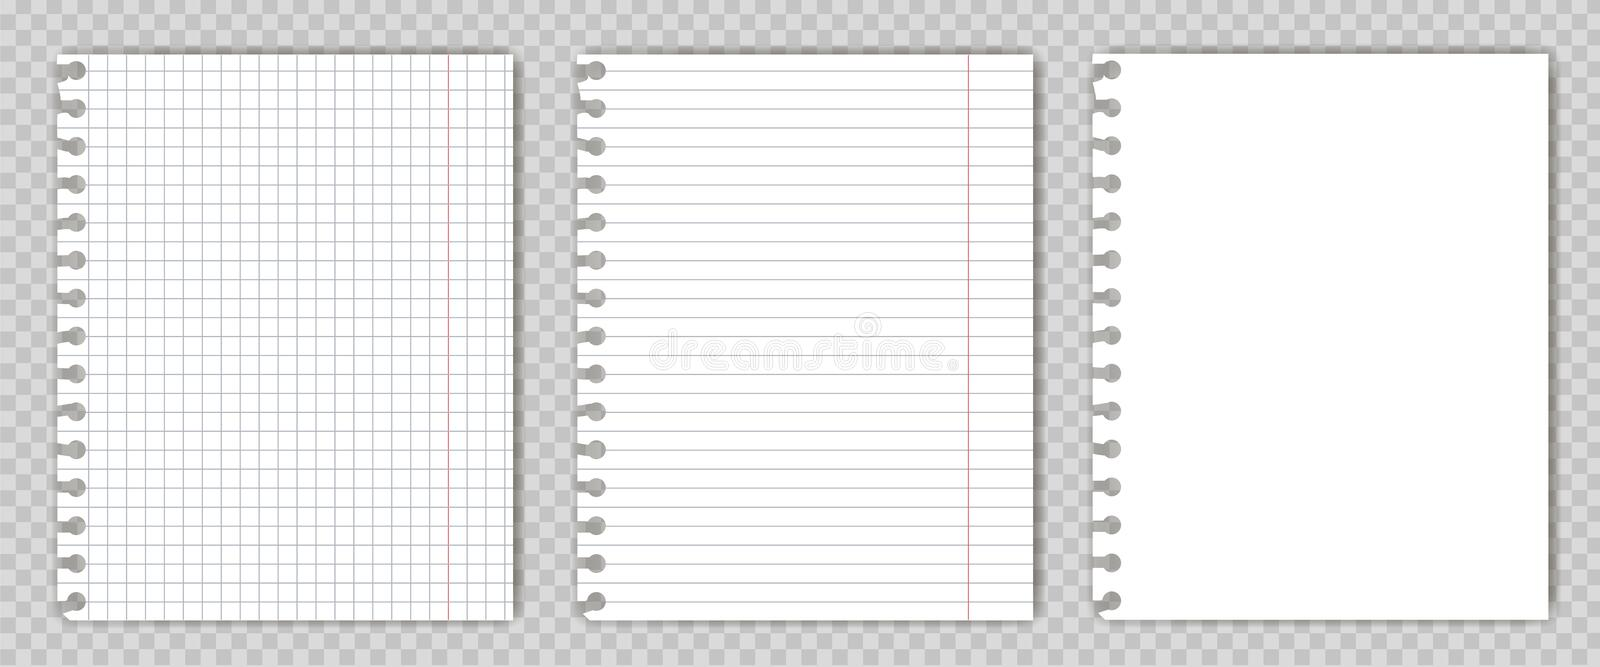 Set of blank copy book sheets with torn edges. Mockup or template of graph notepad pages for your text. royalty free stock photos